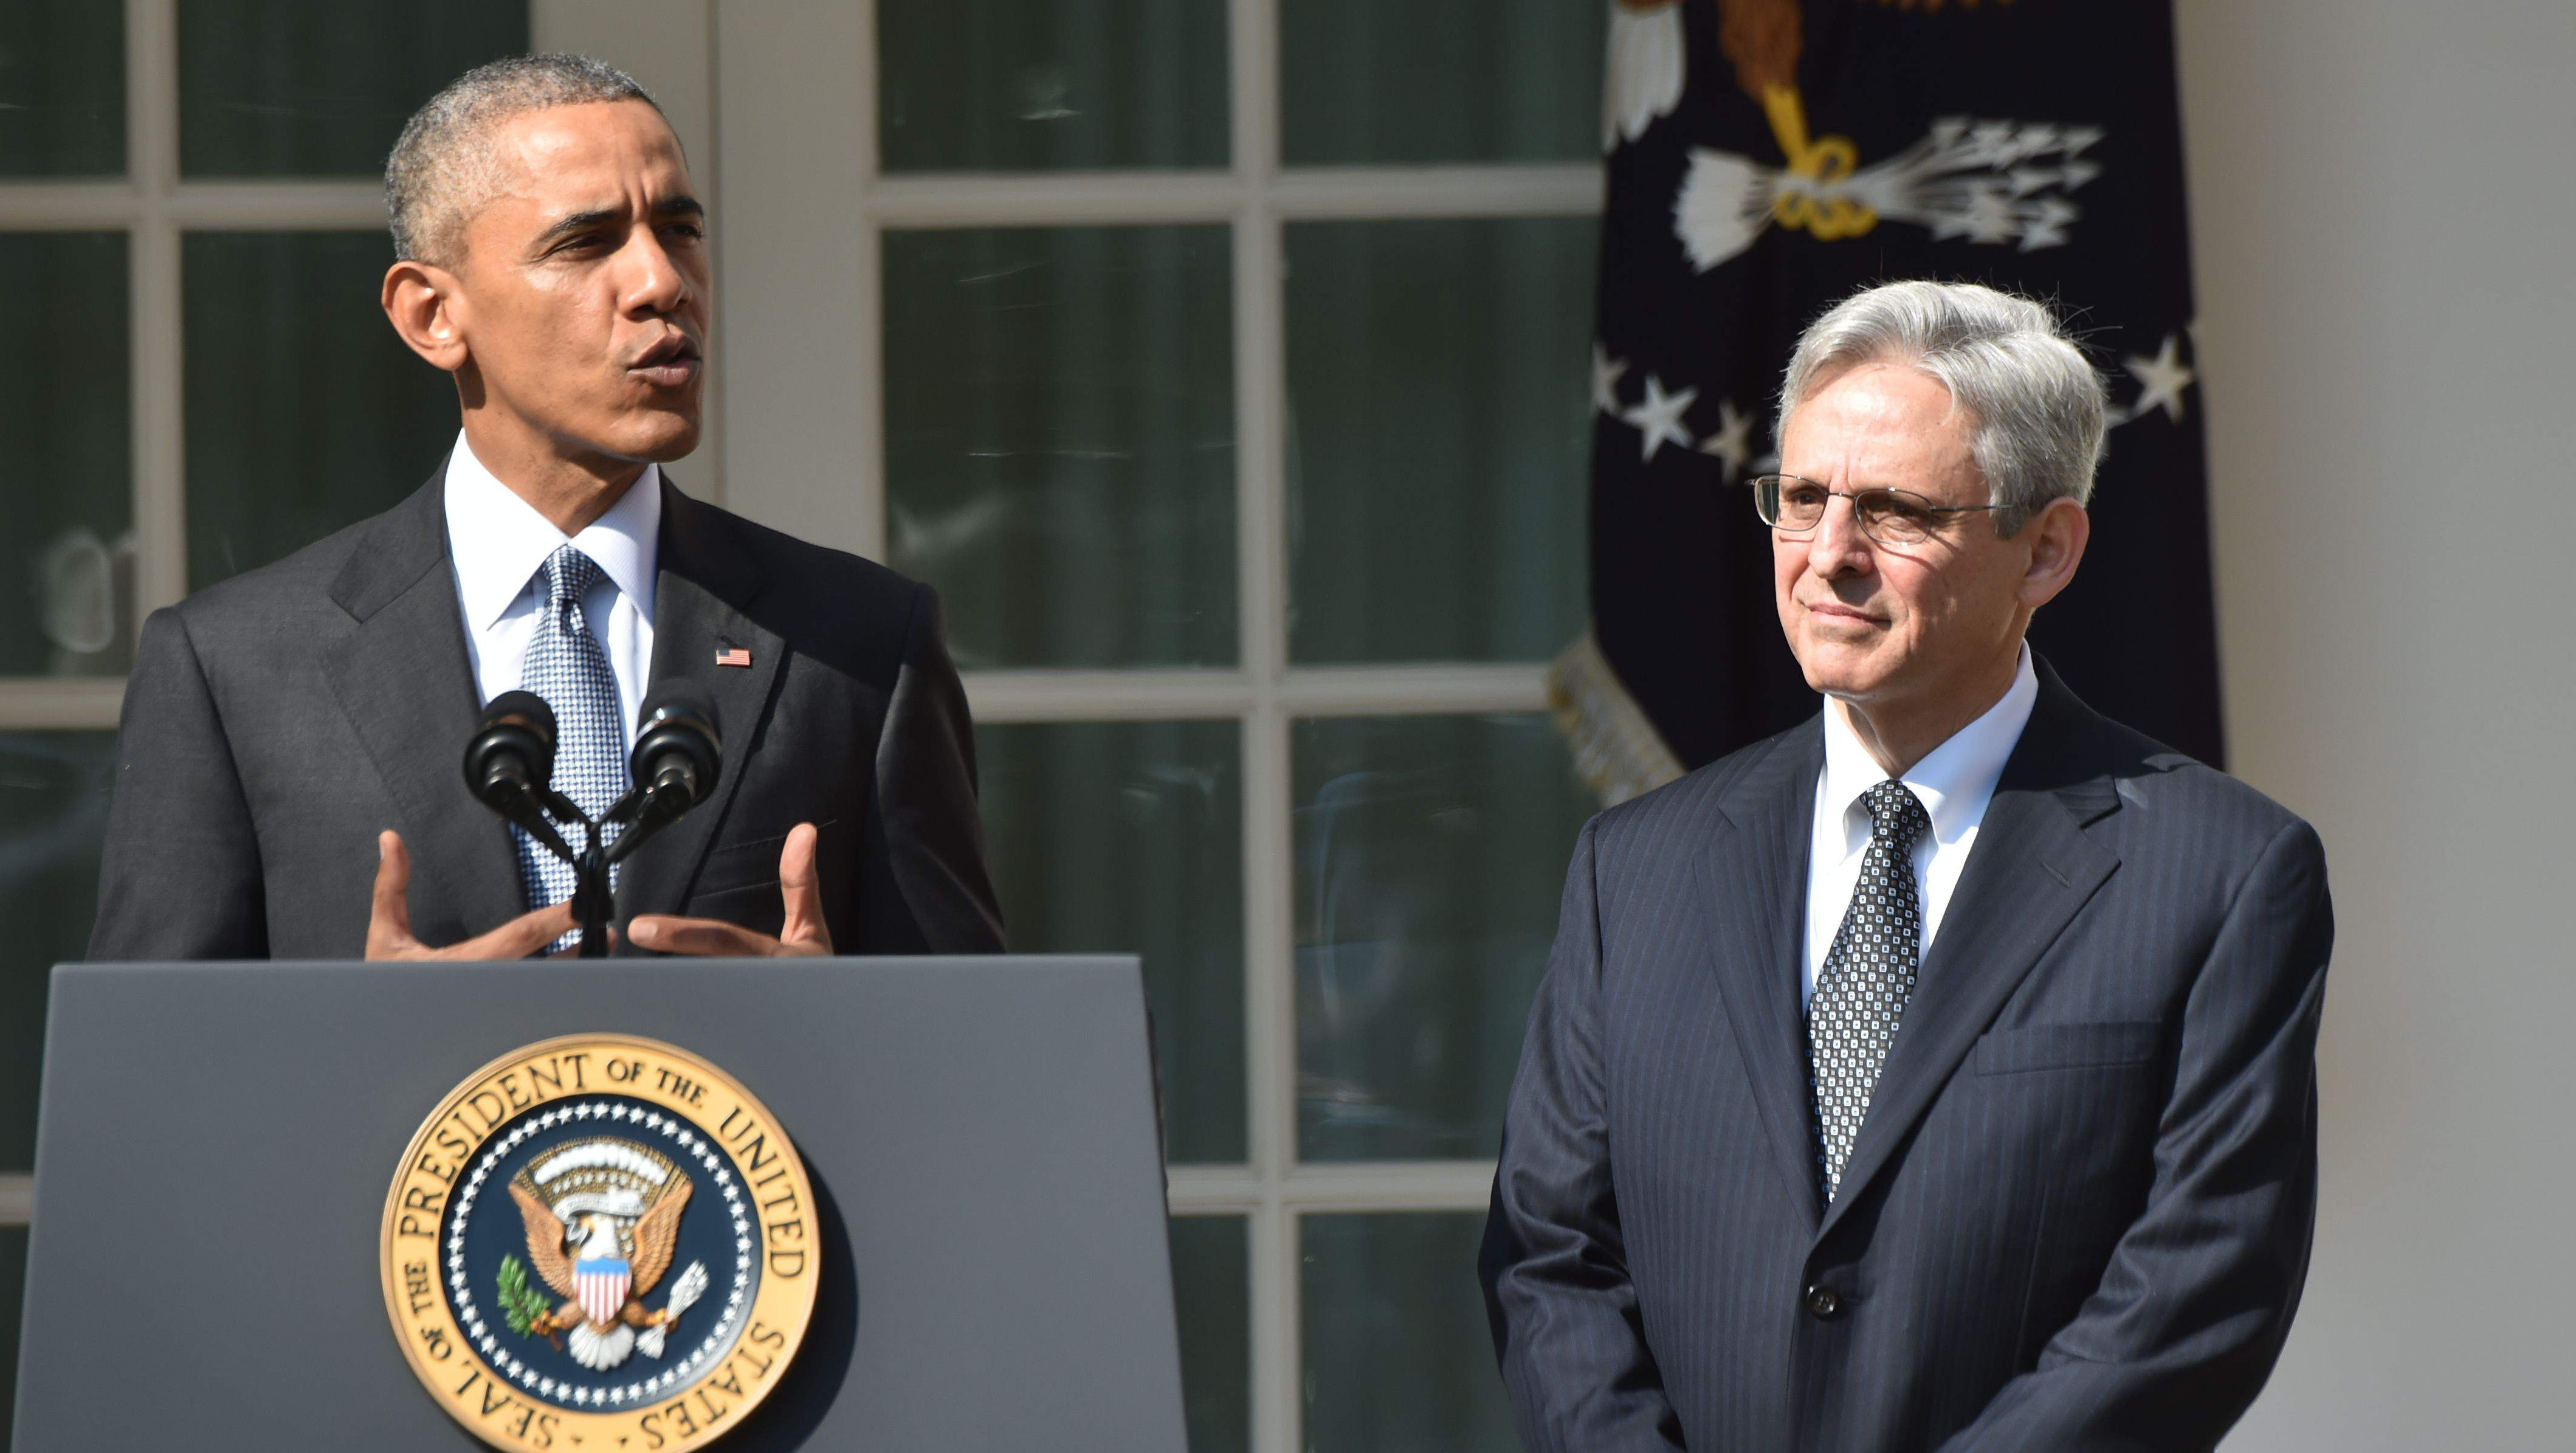 Merrick Garland watches as he is introduced by President Obama. (Getty)